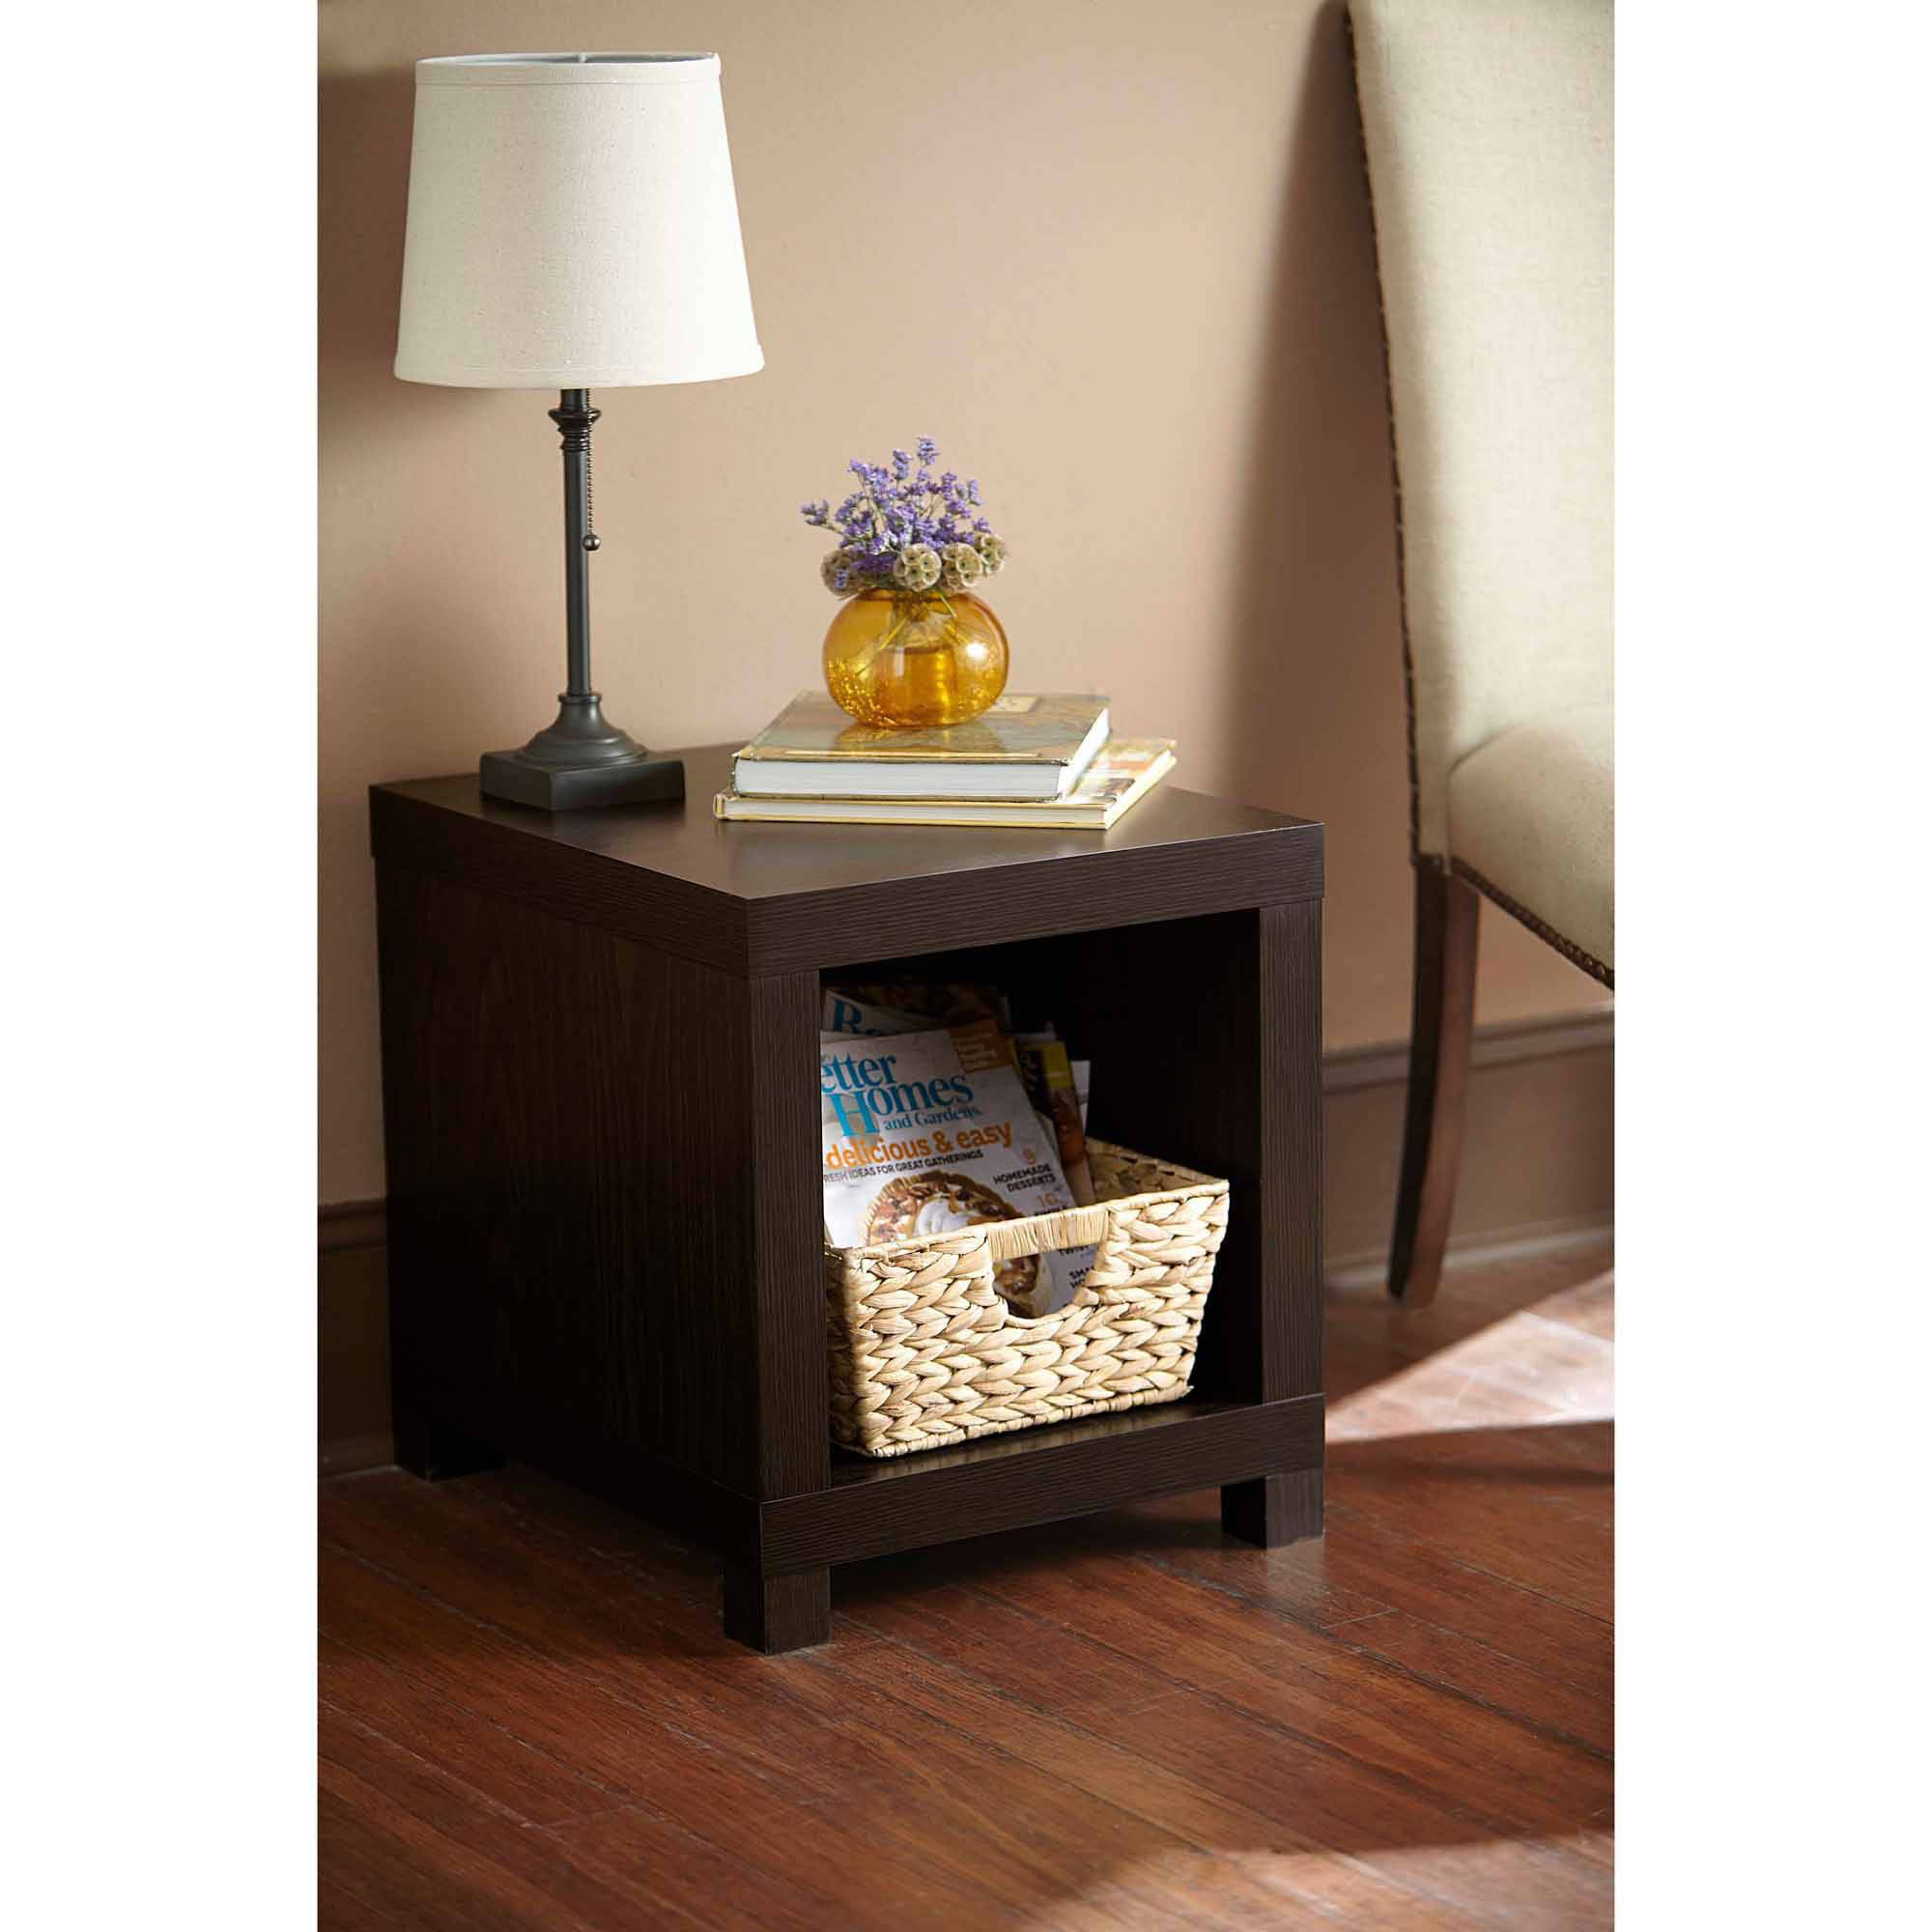 better homes gardens accent table multiple colors small with storage pier buffet white marble living room changing dresser slim lamp industrial nest tables sofa and coffee sets